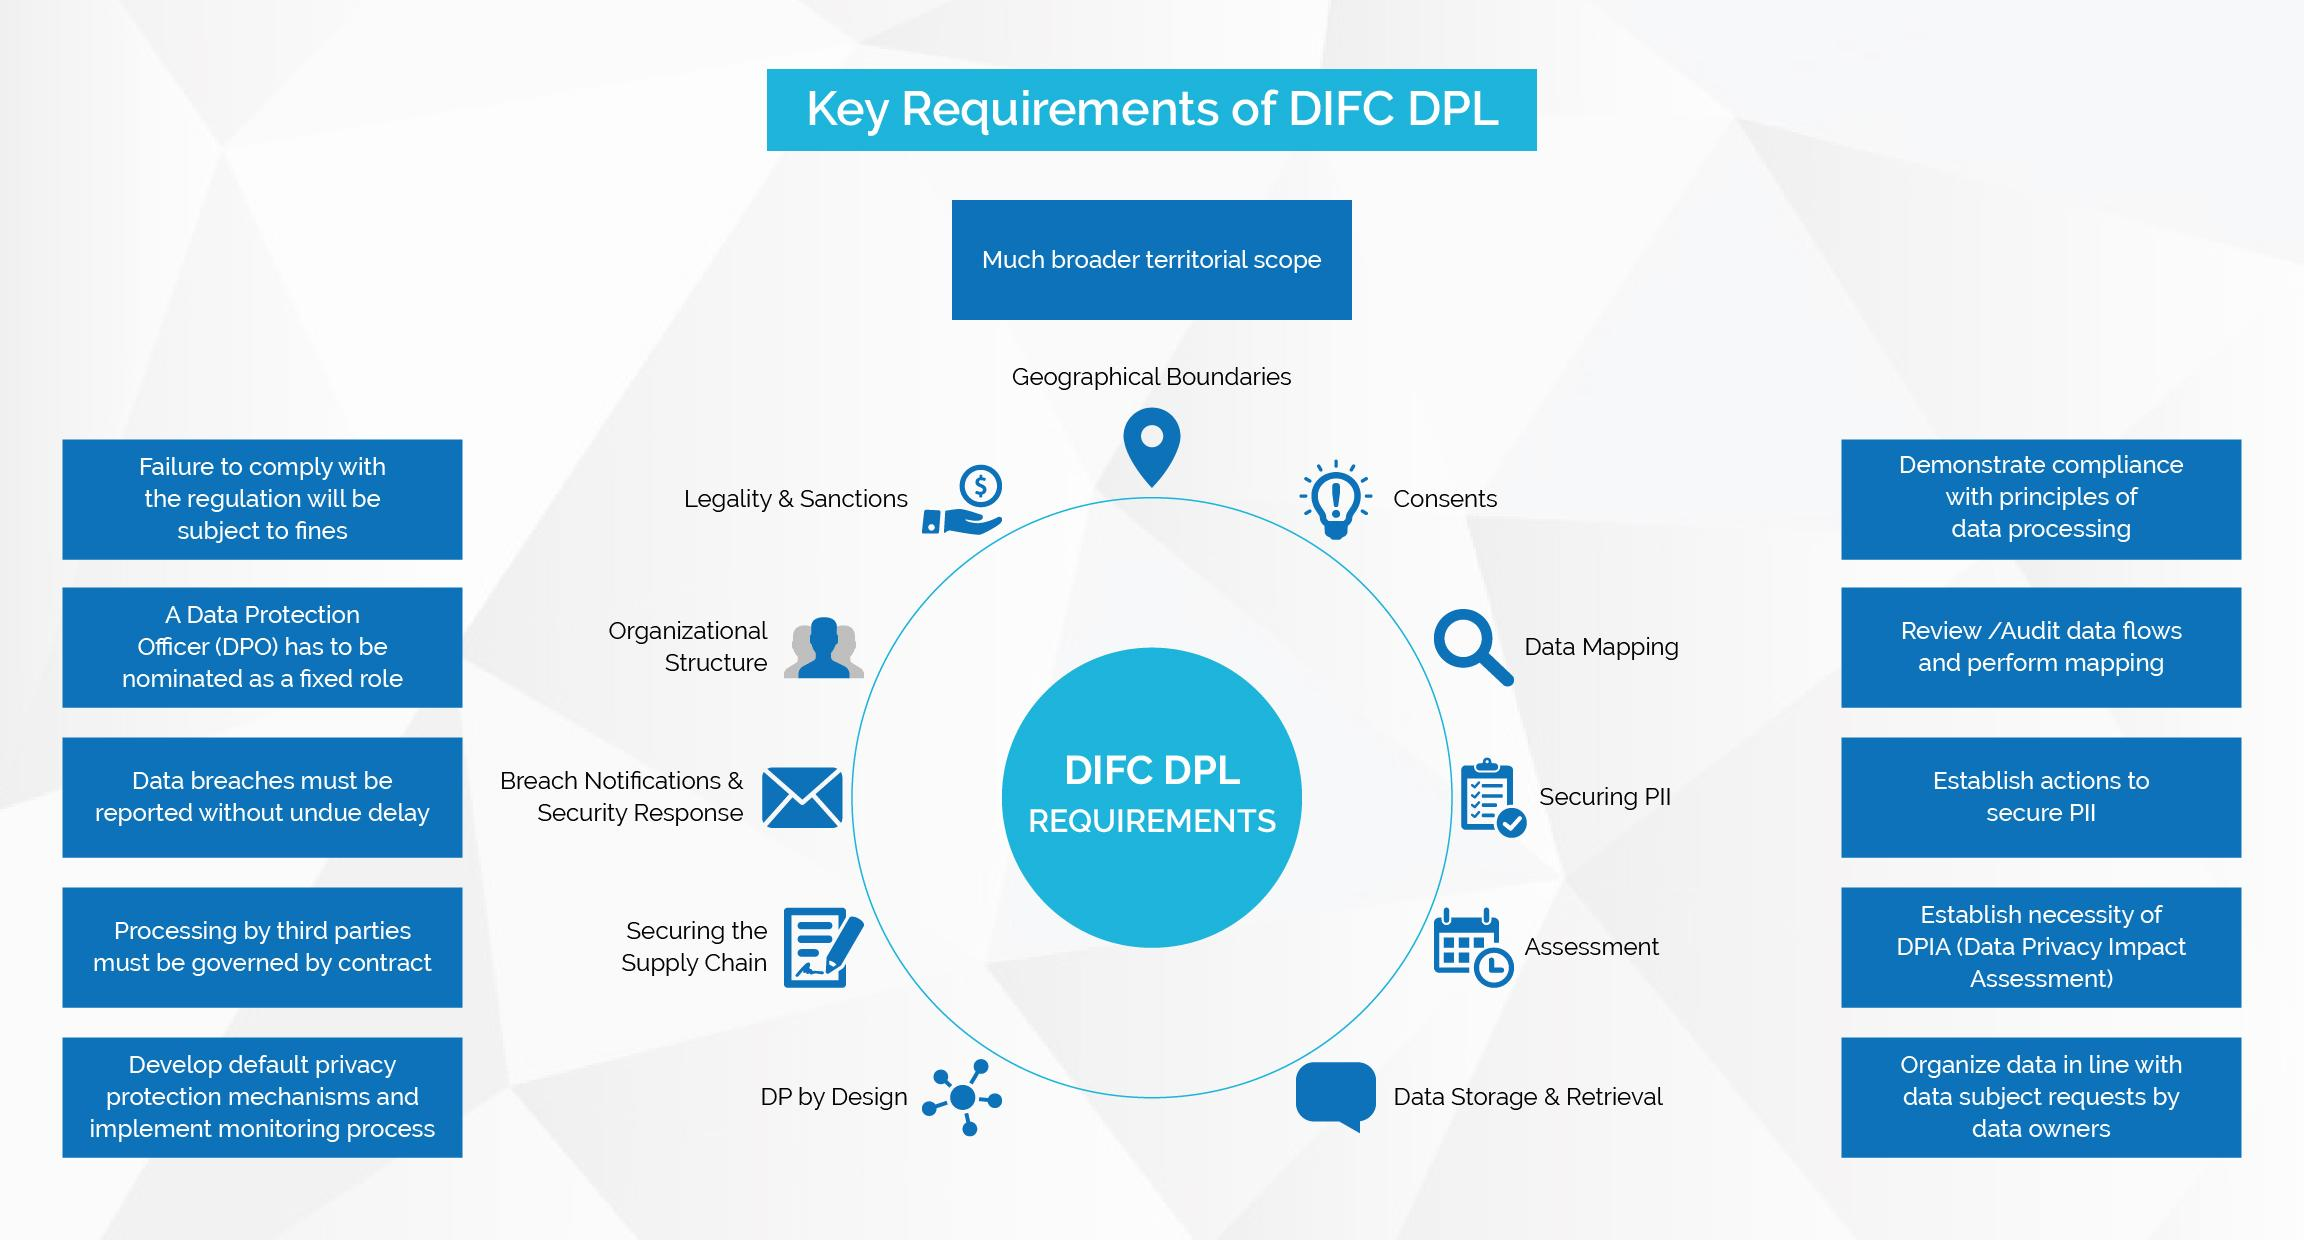 Requirements of DIFC DPL